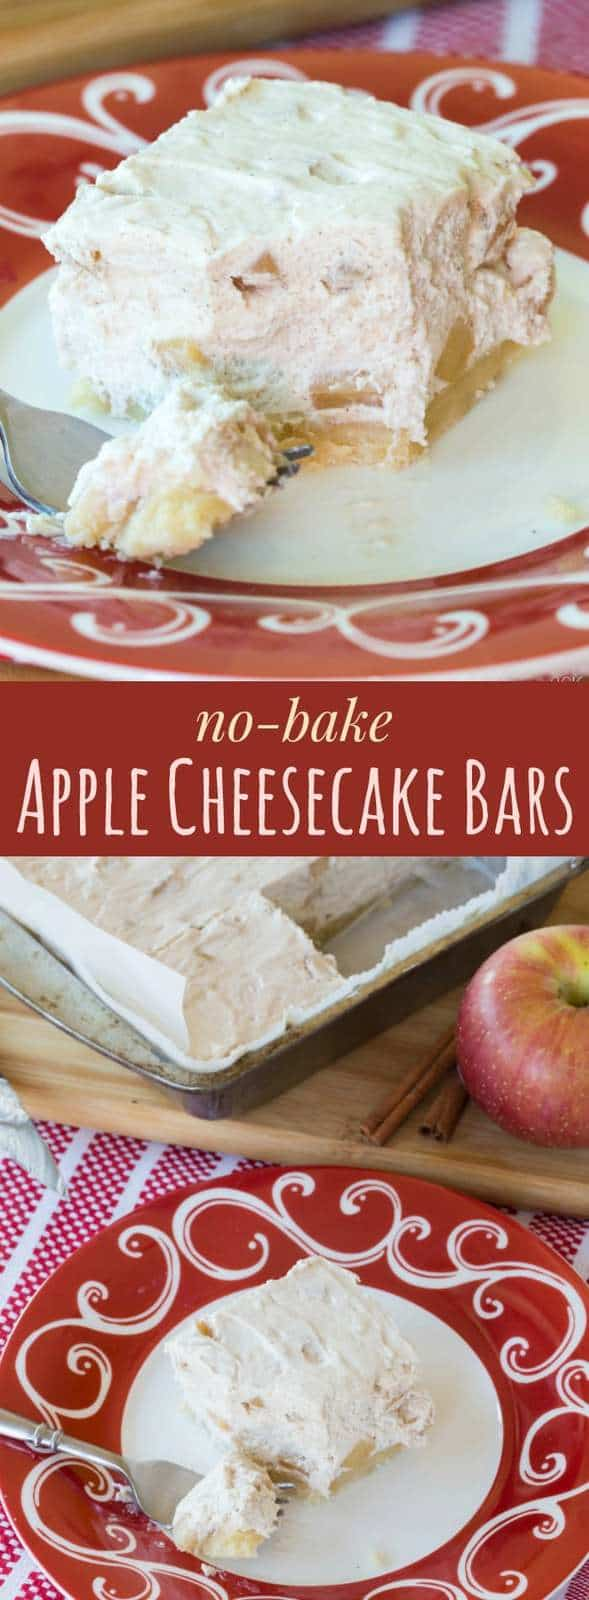 No-Bake Apple Cheesecake Bars with a gluten free almond crust are a light, fluffy holiday dessert recipe